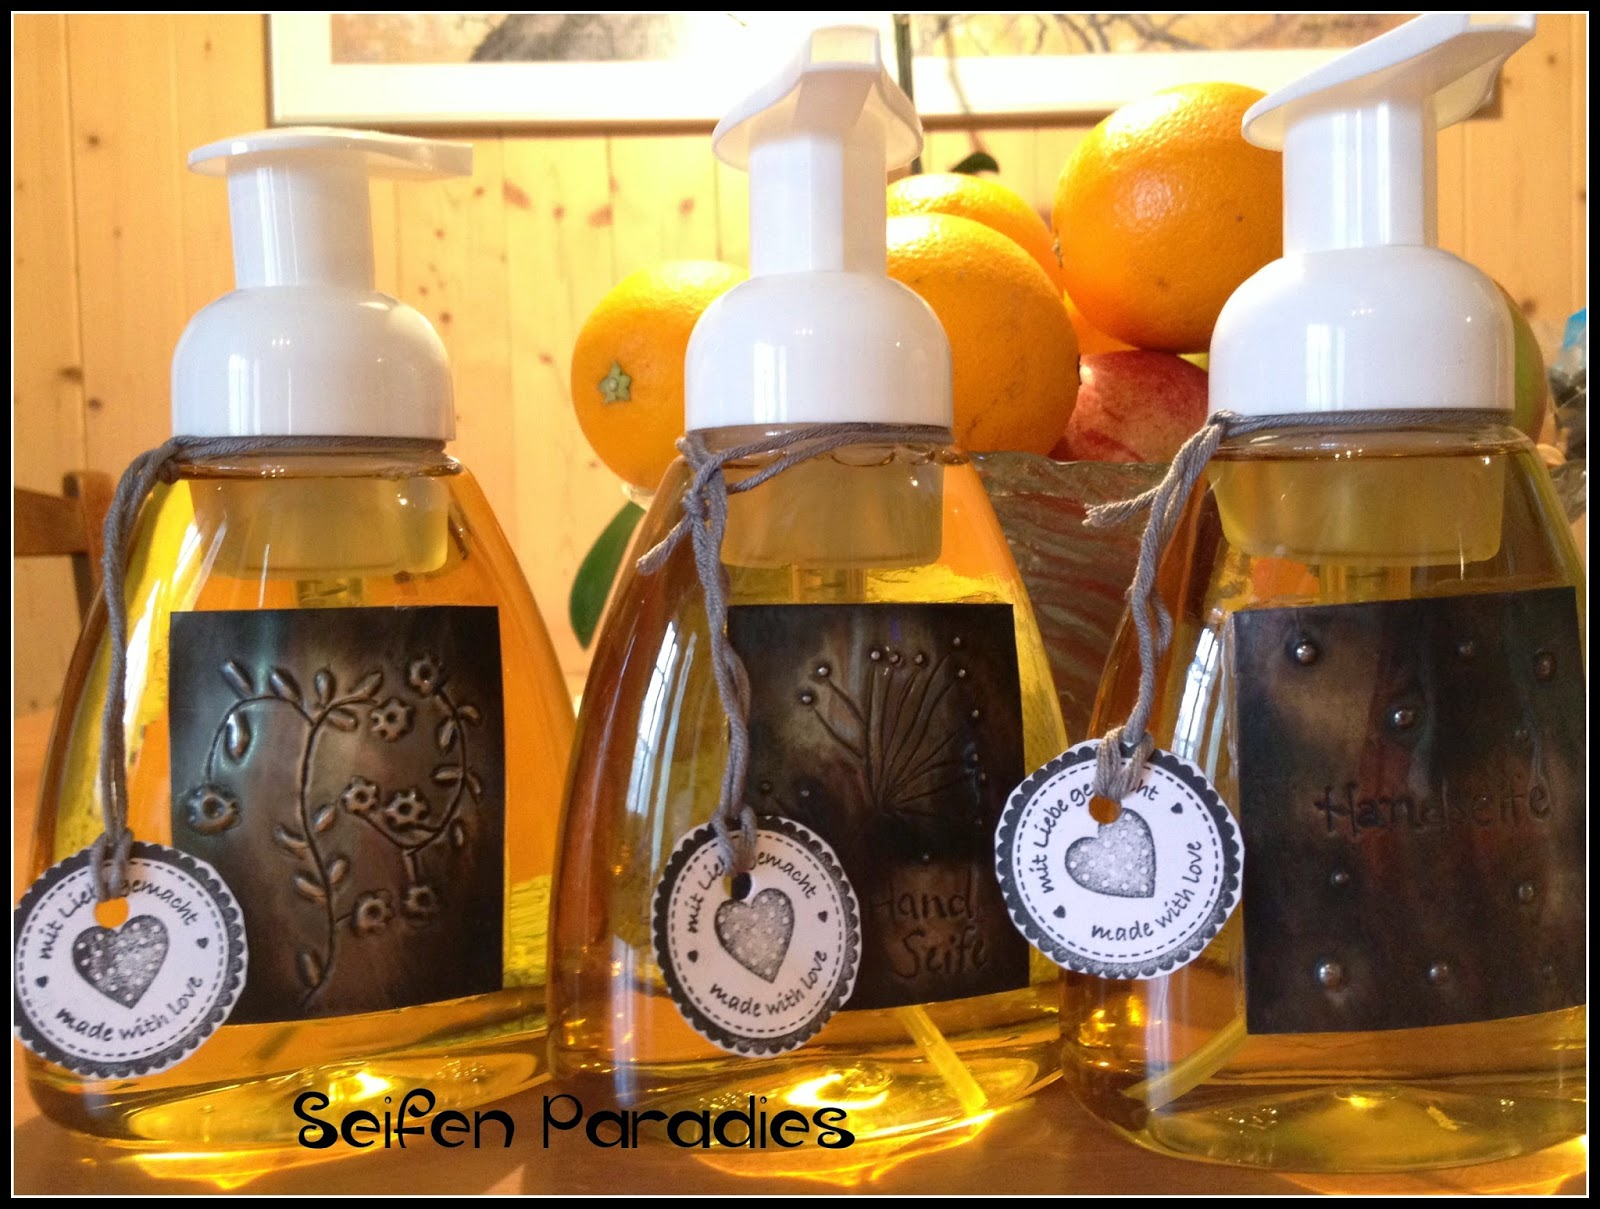 Seifenspender/Liquid Soap